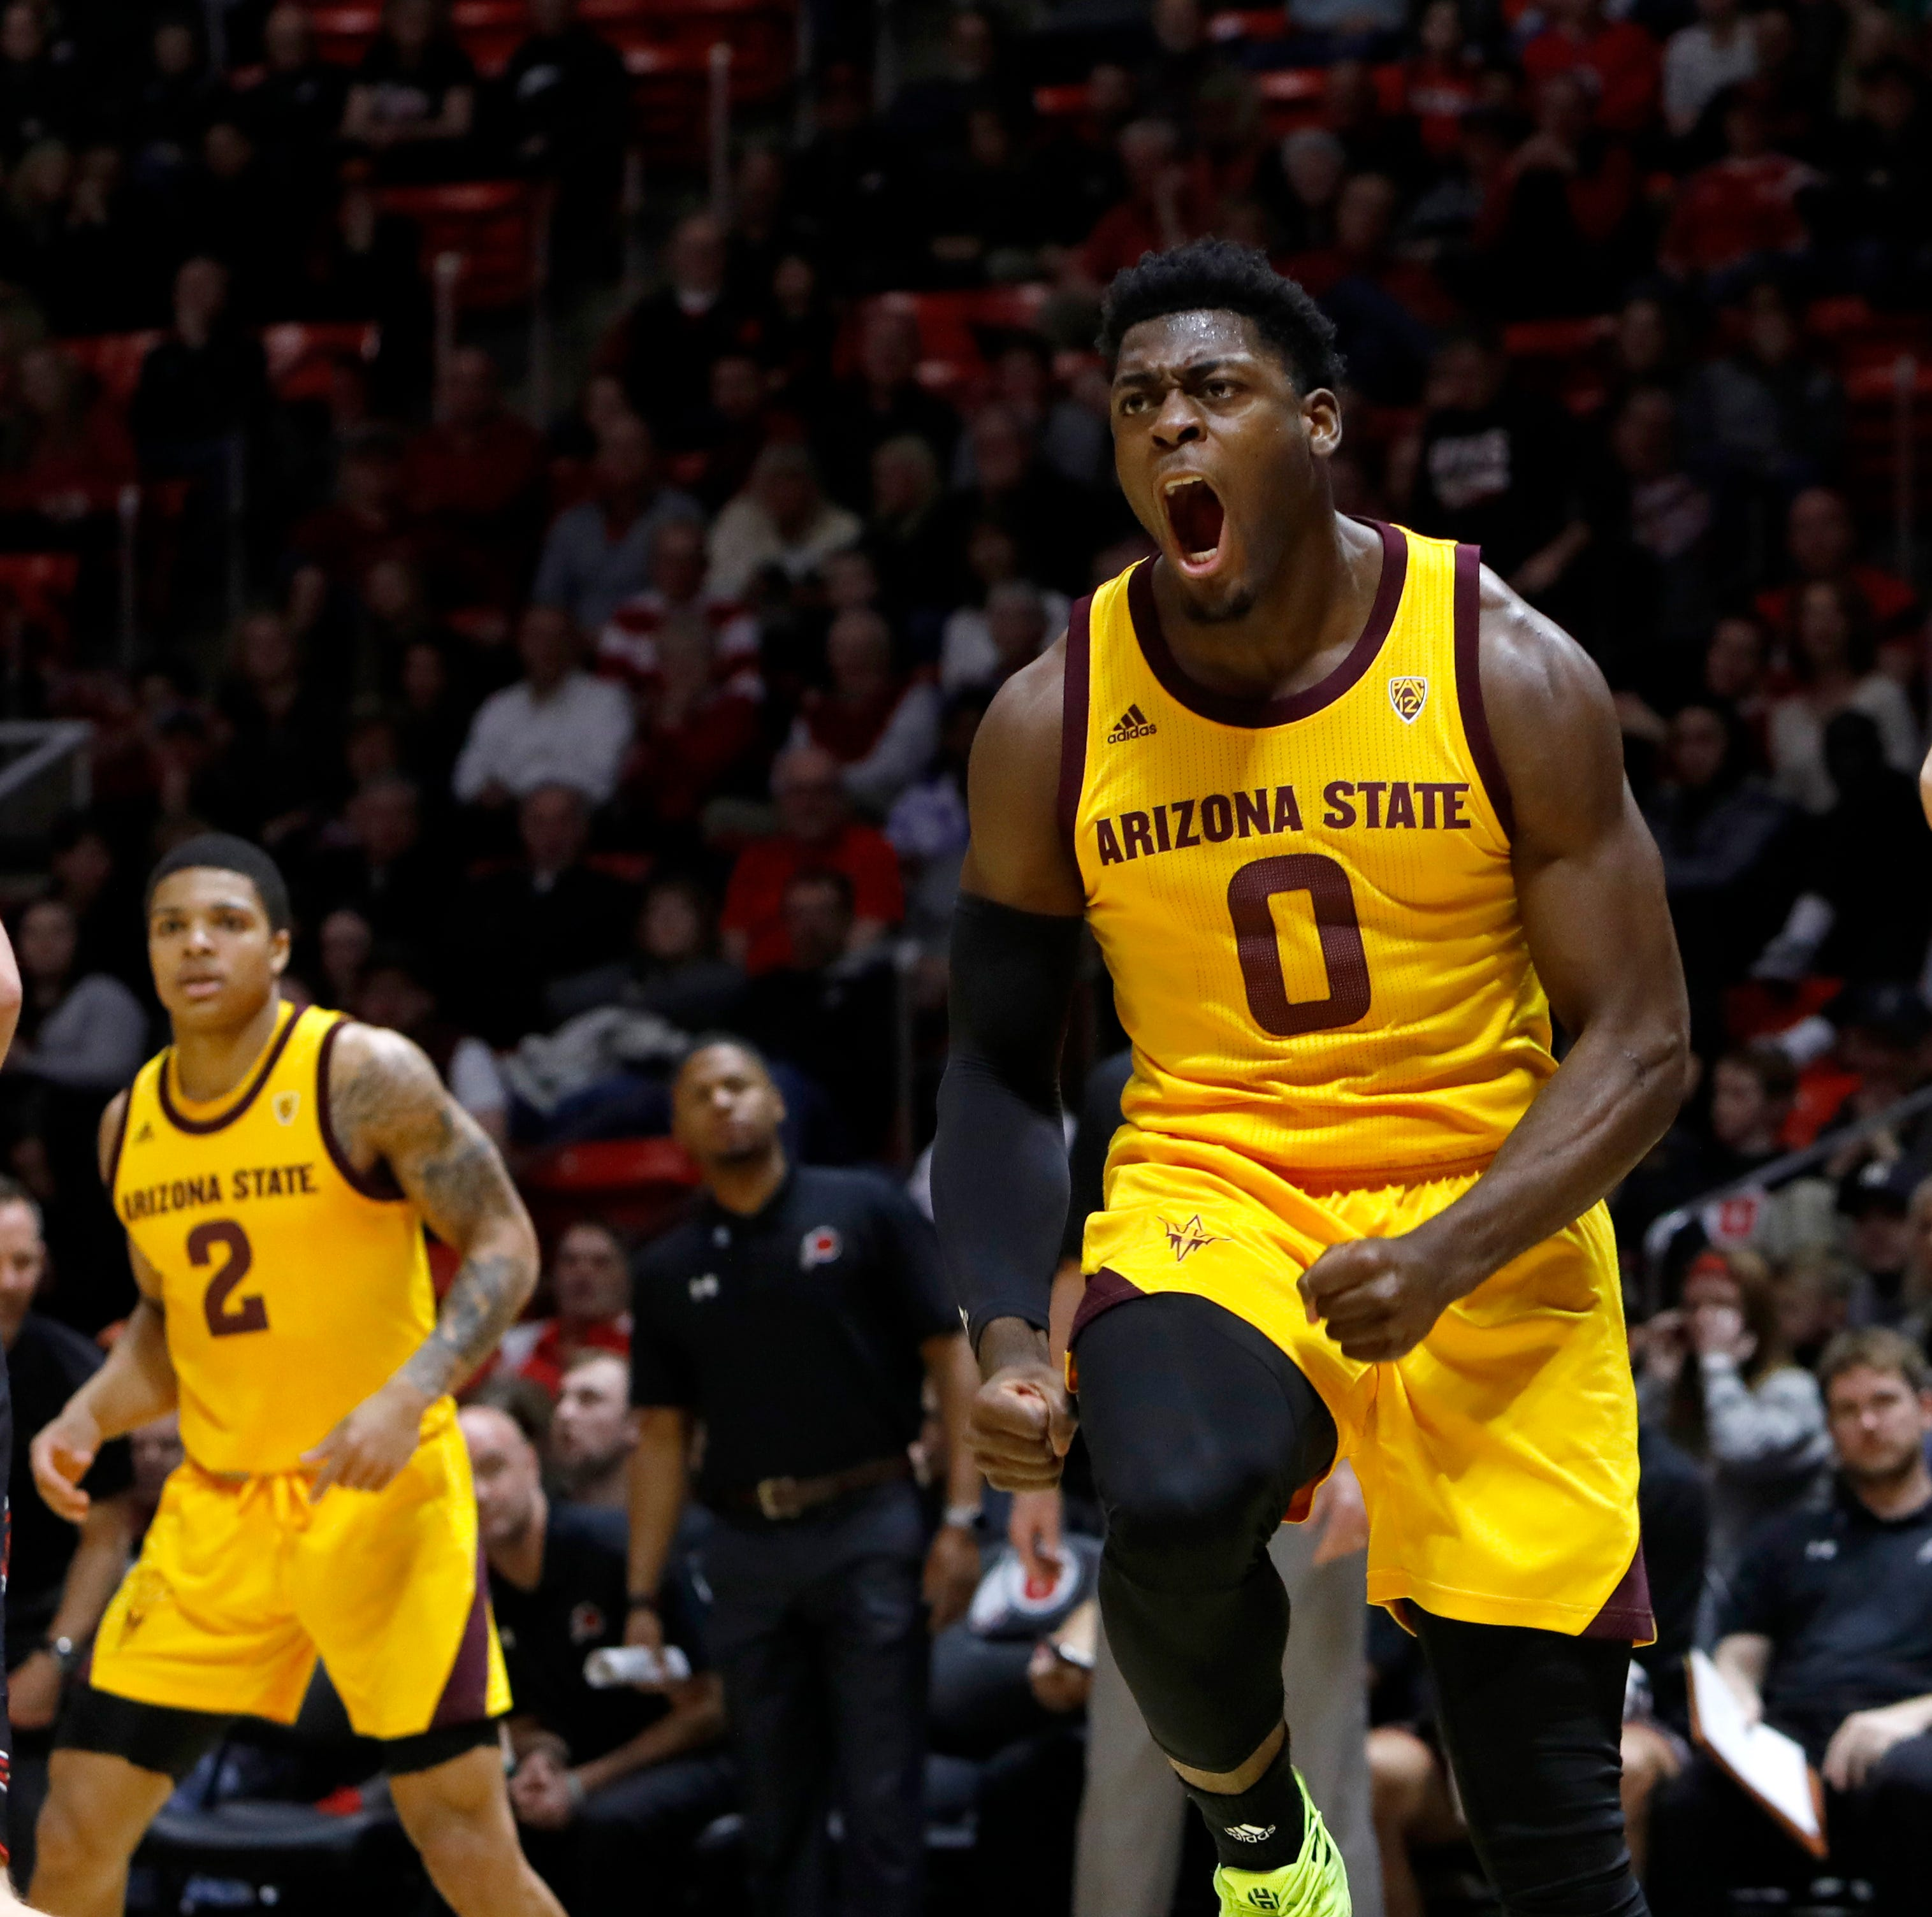 ASU's Luguentz Dort expected to declare for NBA draft, report says